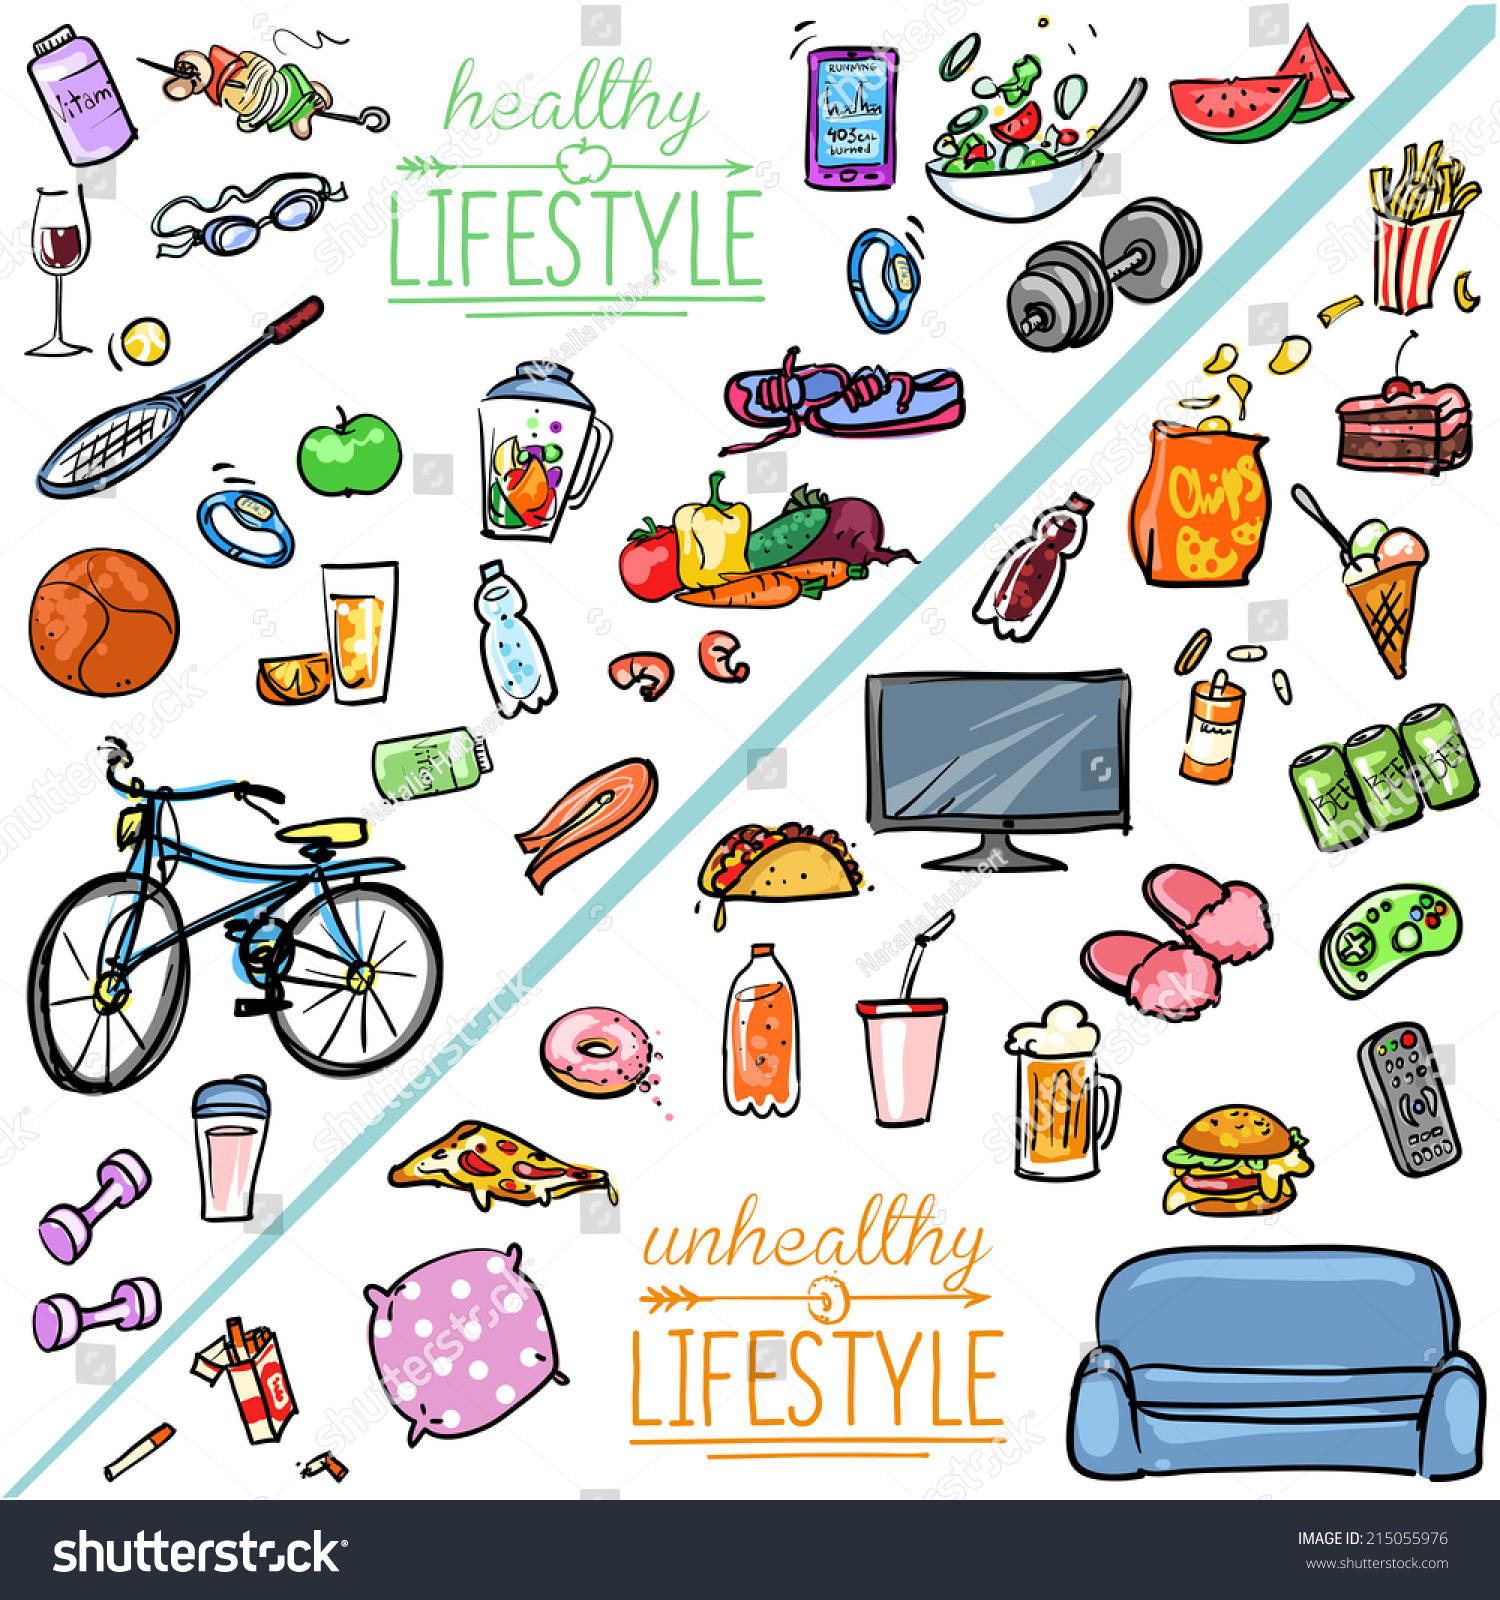 Healthy Lifestyle Vs Unhealthy Lifestyle Hand Stock Vector